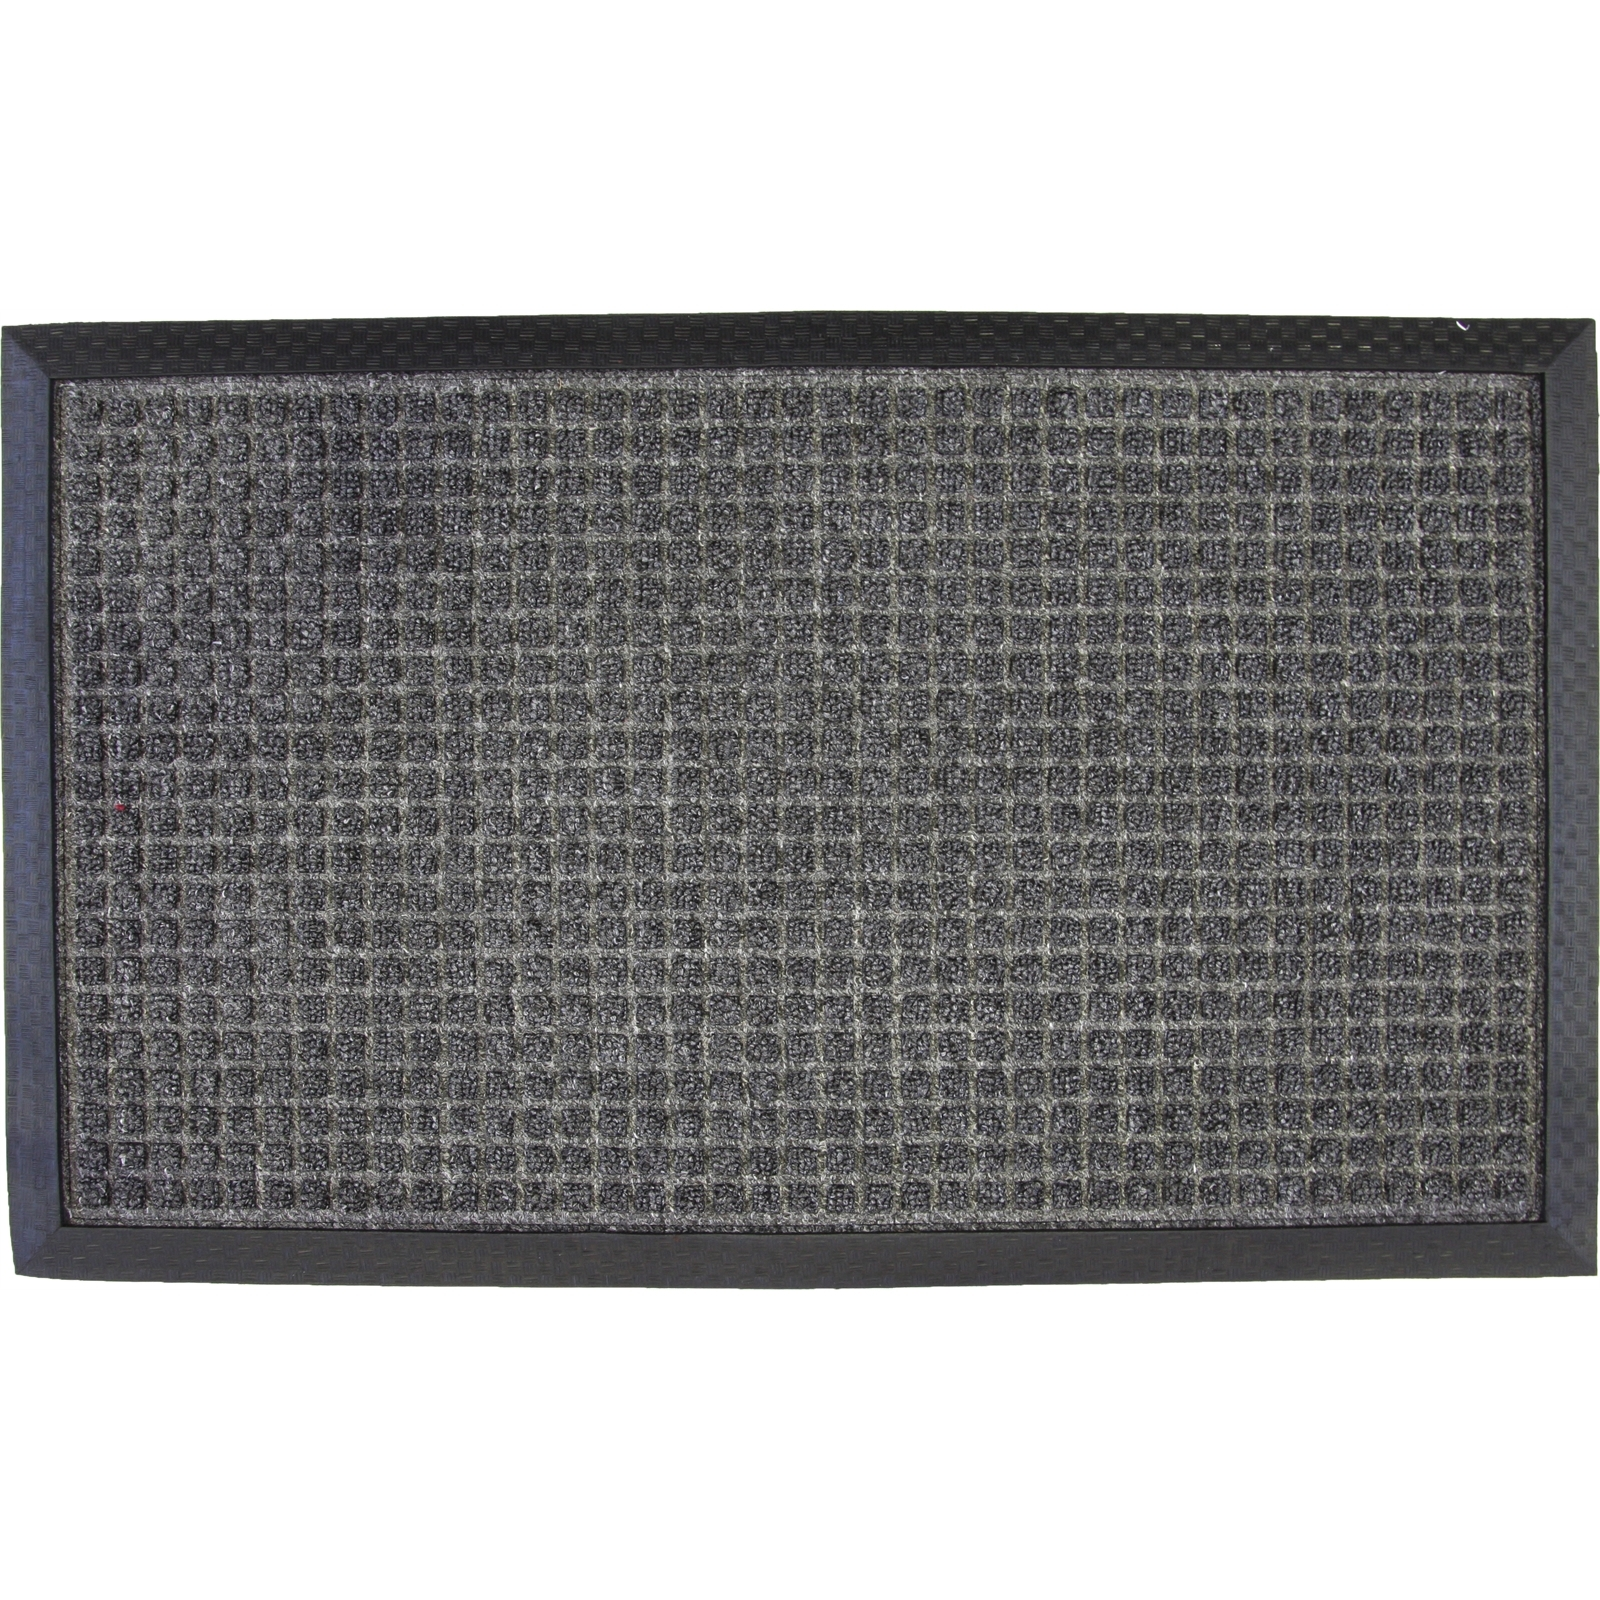 Bayliss 60 x 90cm Large Squares Outdoor Mat